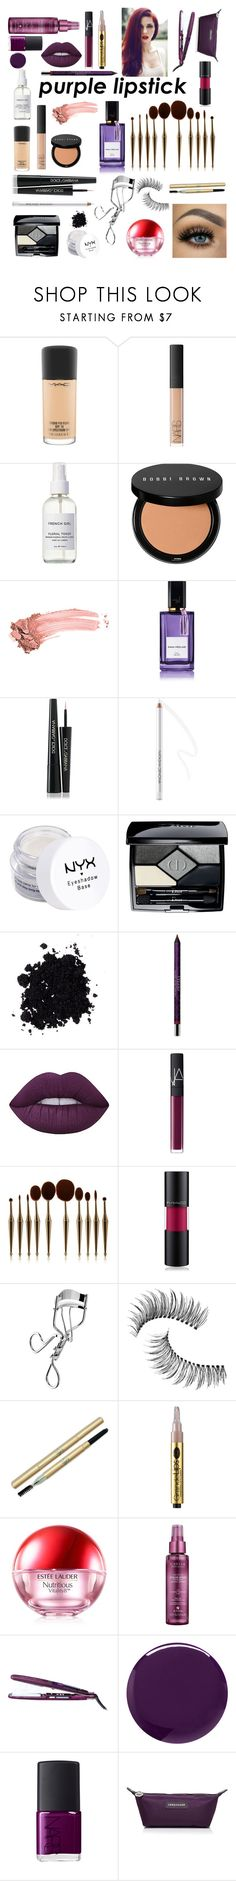 """""""Viola."""" by thetravelbuff ❤ liked on Polyvore featuring beauty, MAC Cosmetics, NARS Cosmetics, French Girl, Bobbi Brown Cosmetics, Elizabeth Arden, Diana Vreeland, Dolce&Gabbana, NYX and Christian Dior"""